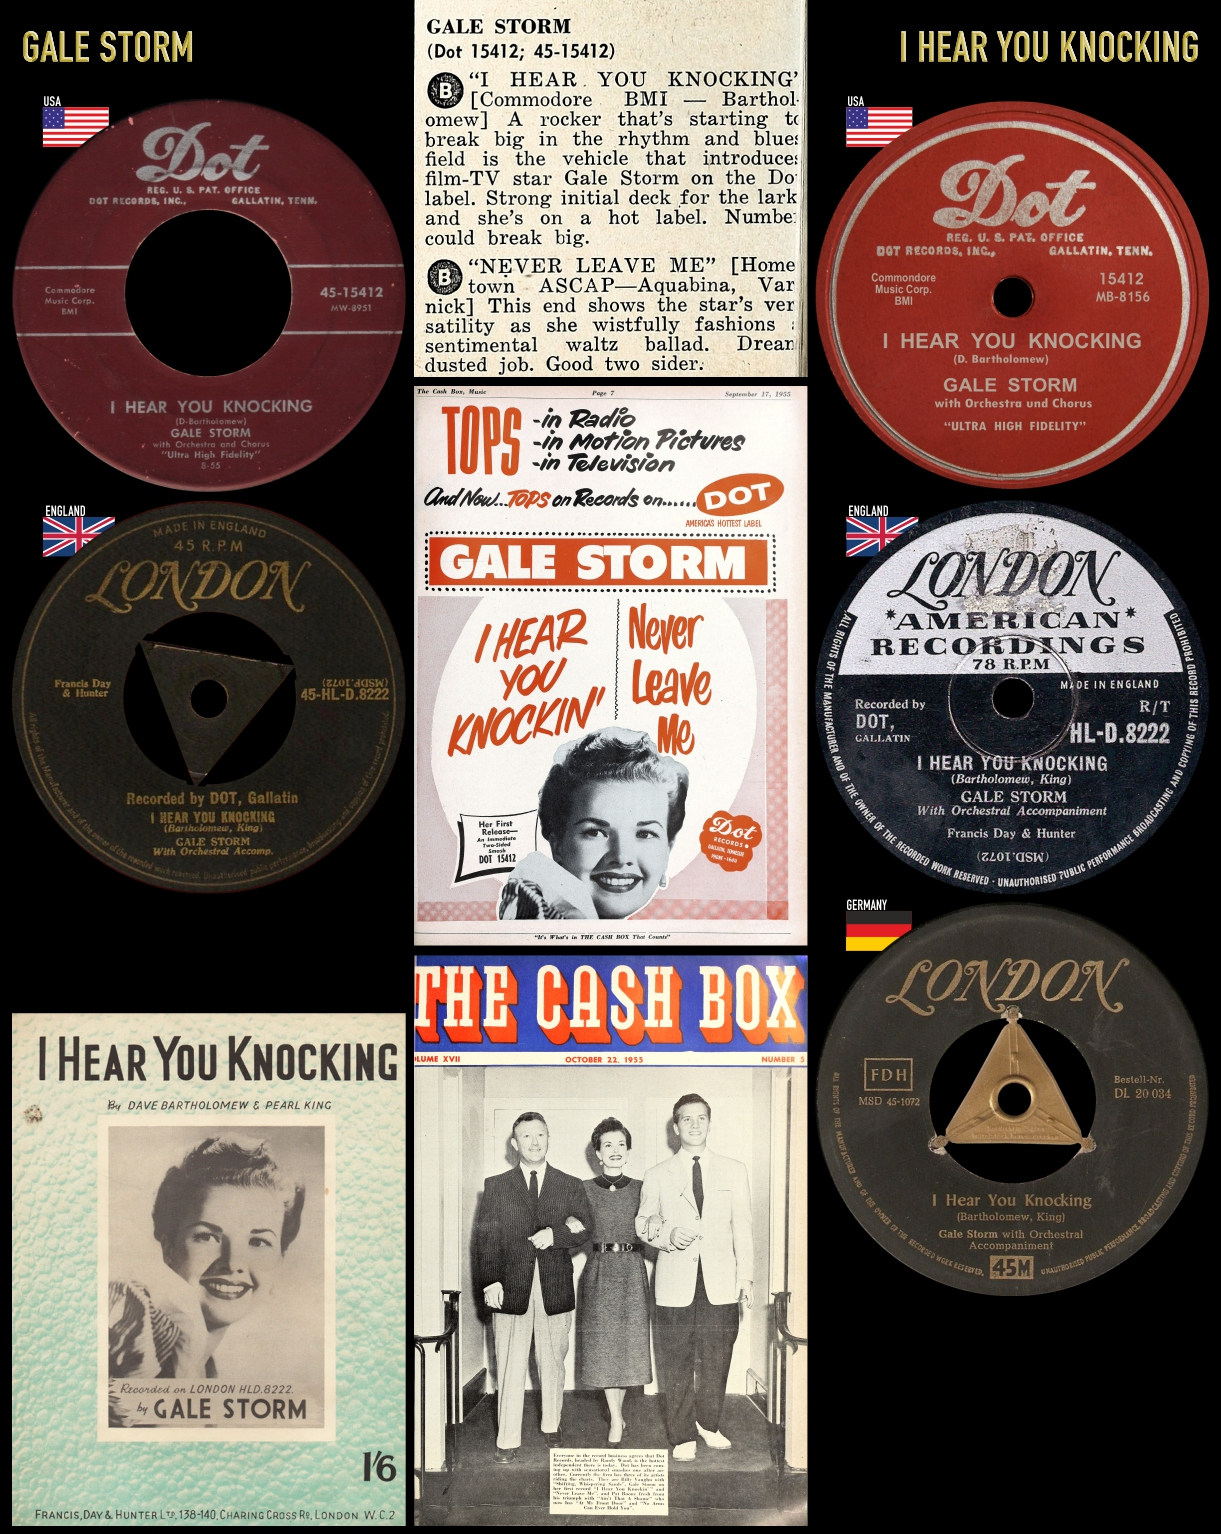 551022_Gale Storm_I Hear You Knocking